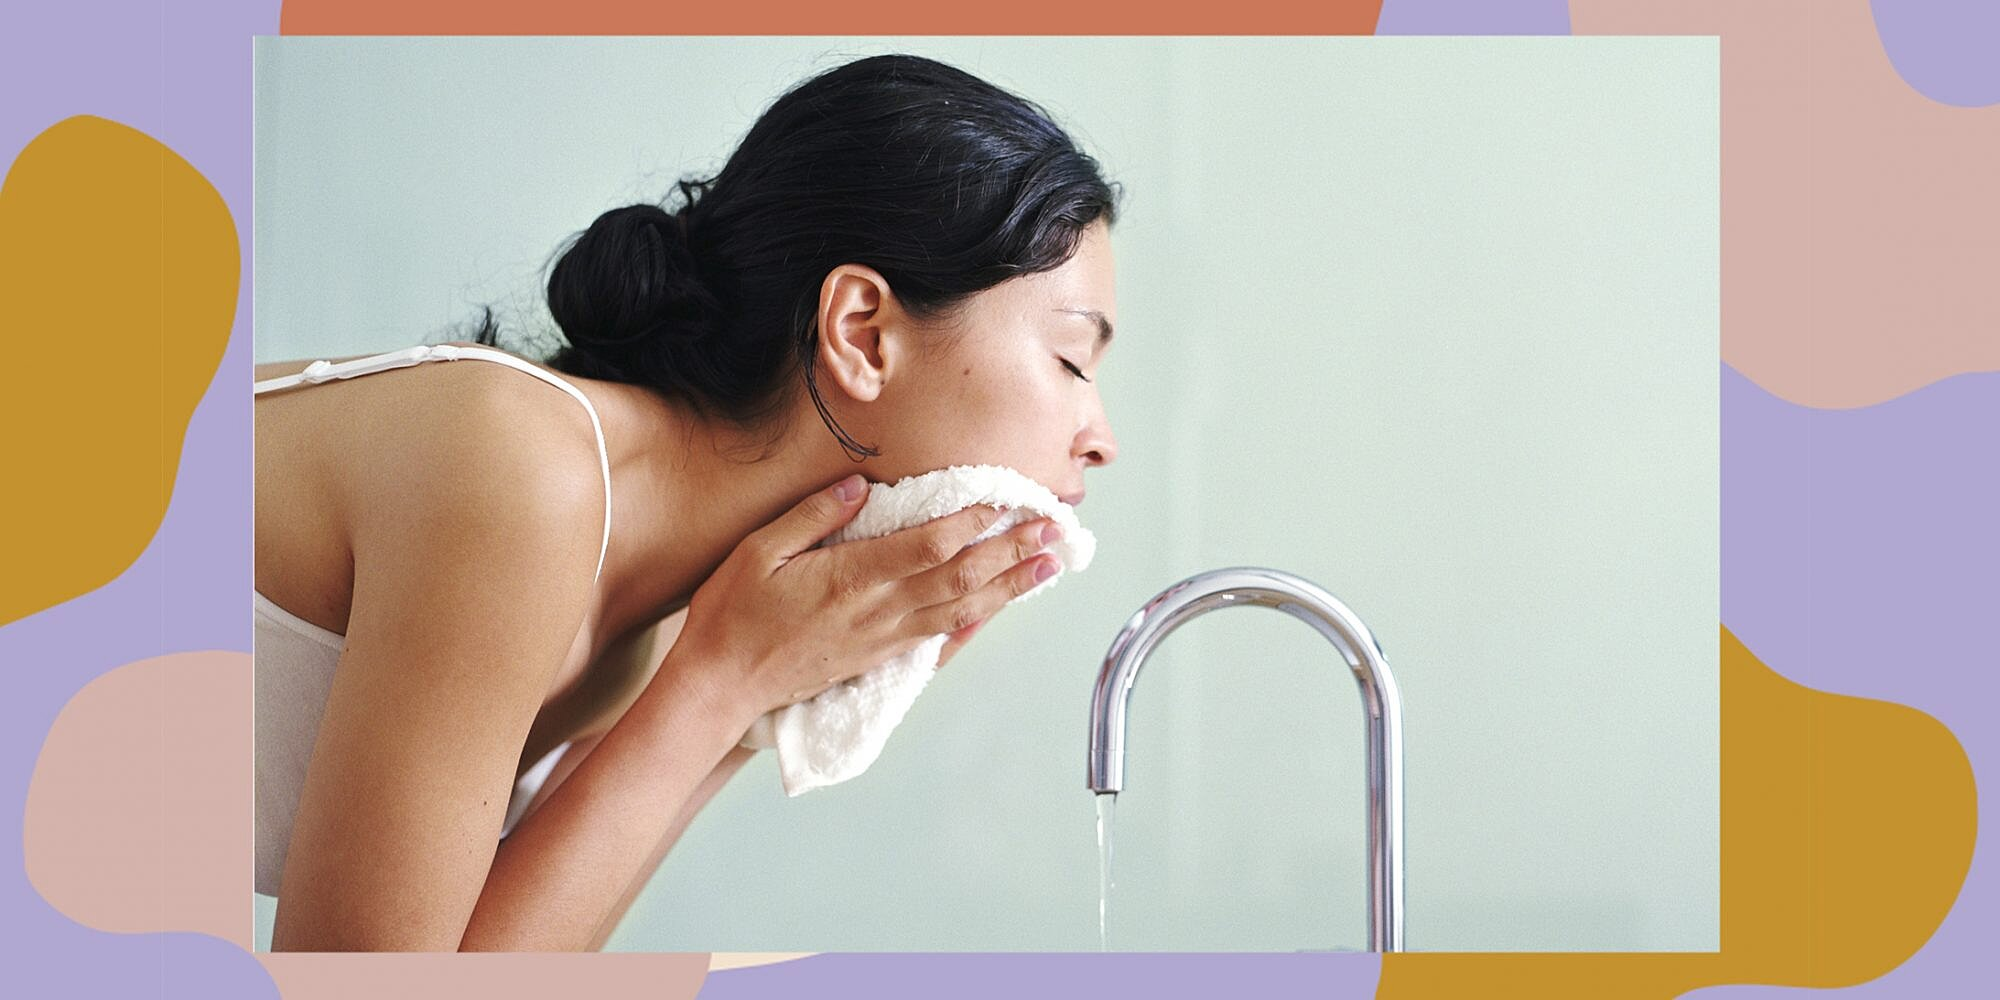 Wait, Can Cleansing Your Skin With Tap Water Cause Your Skin to Break Out?